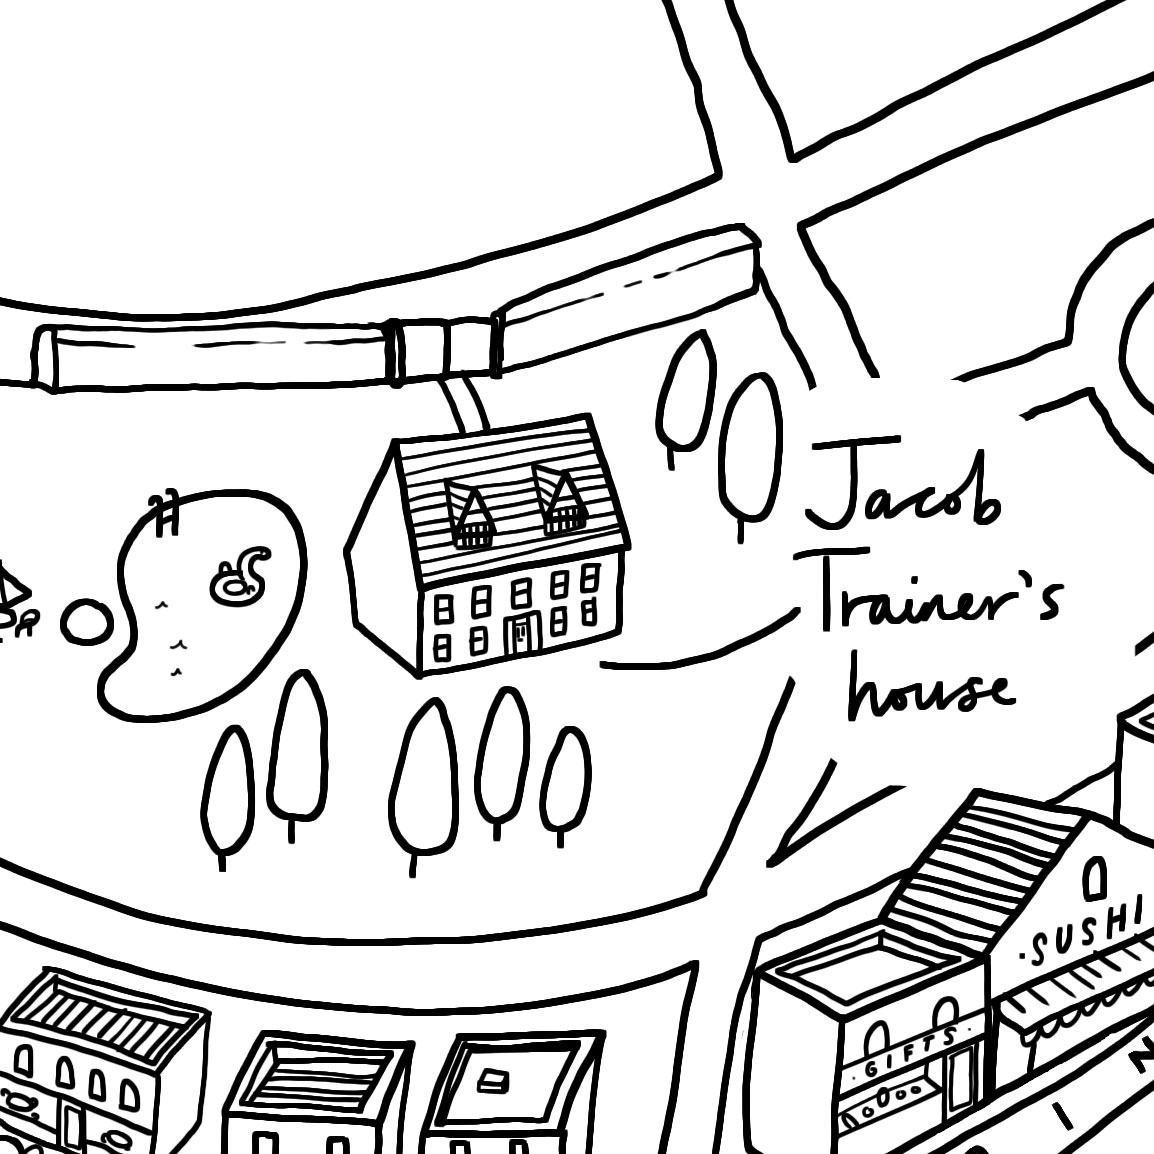 Crop of map of fictional Hamptons village for I Killed Zoe Spanos by Kit Frick